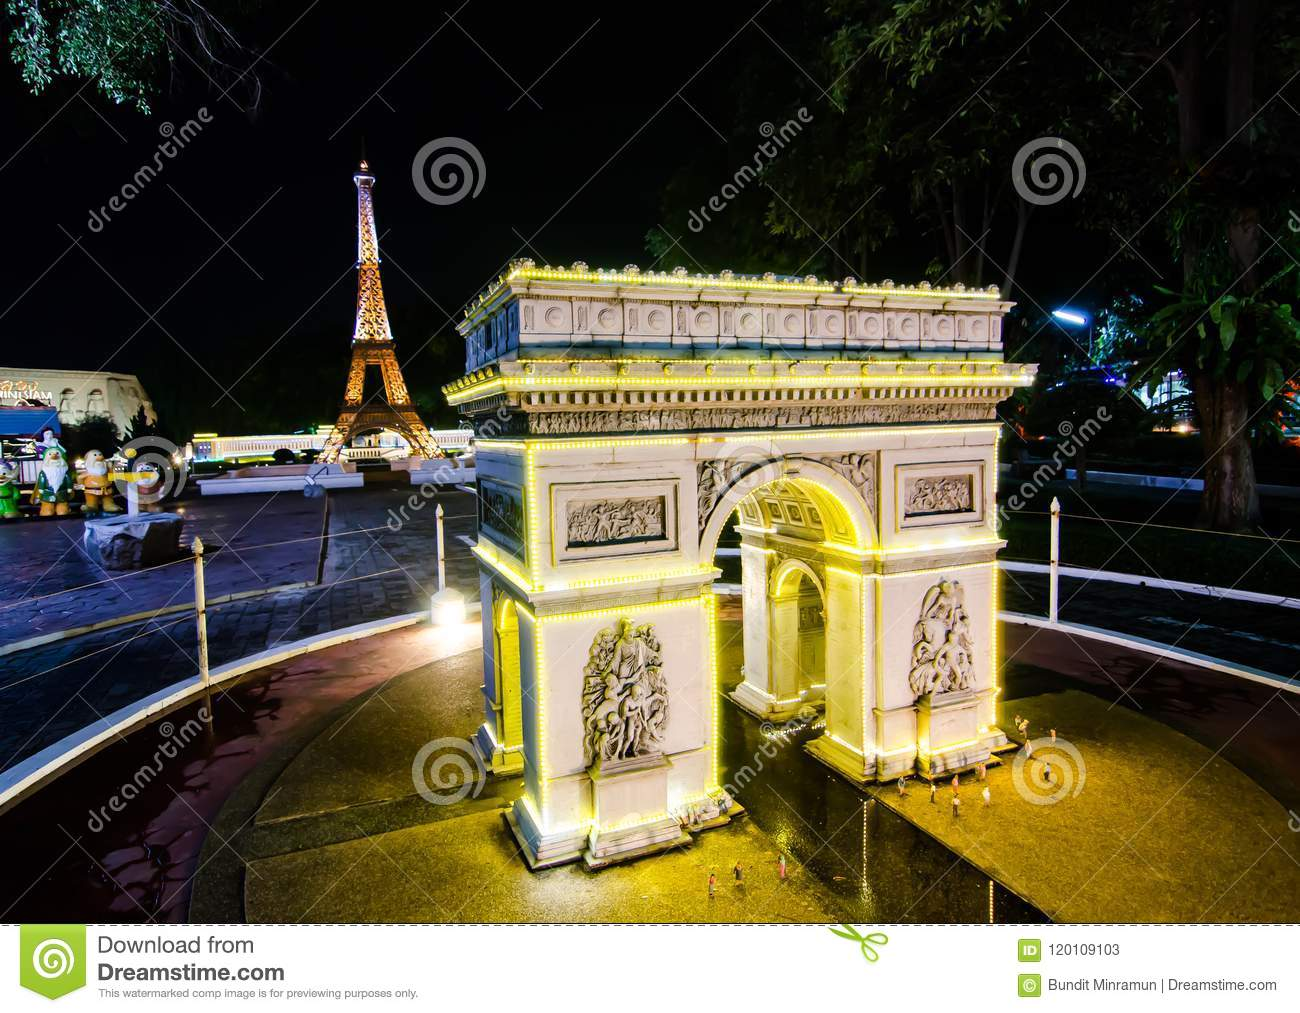 Night photography of The Arc de triomphe Paris at miniature park is an open space that displays miniature buildings and models.